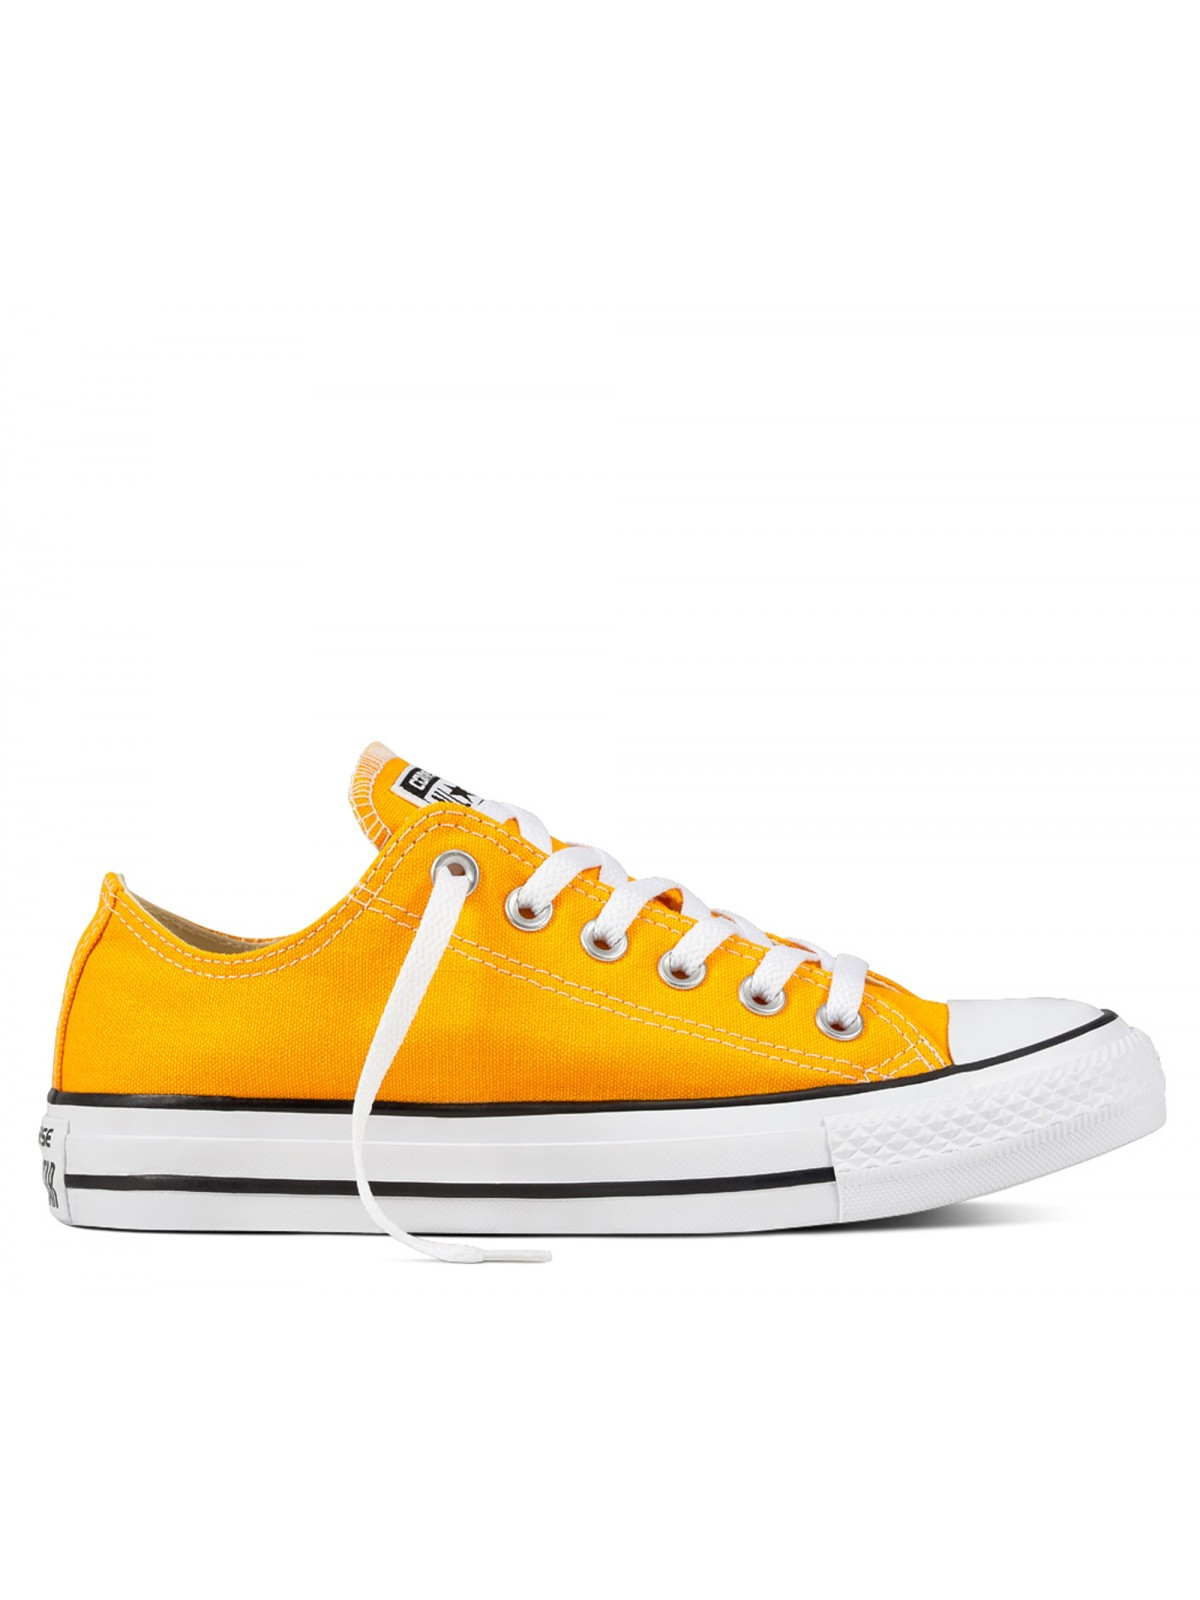 Converse Chuck Taylor all star toile basse orange ray - Marques